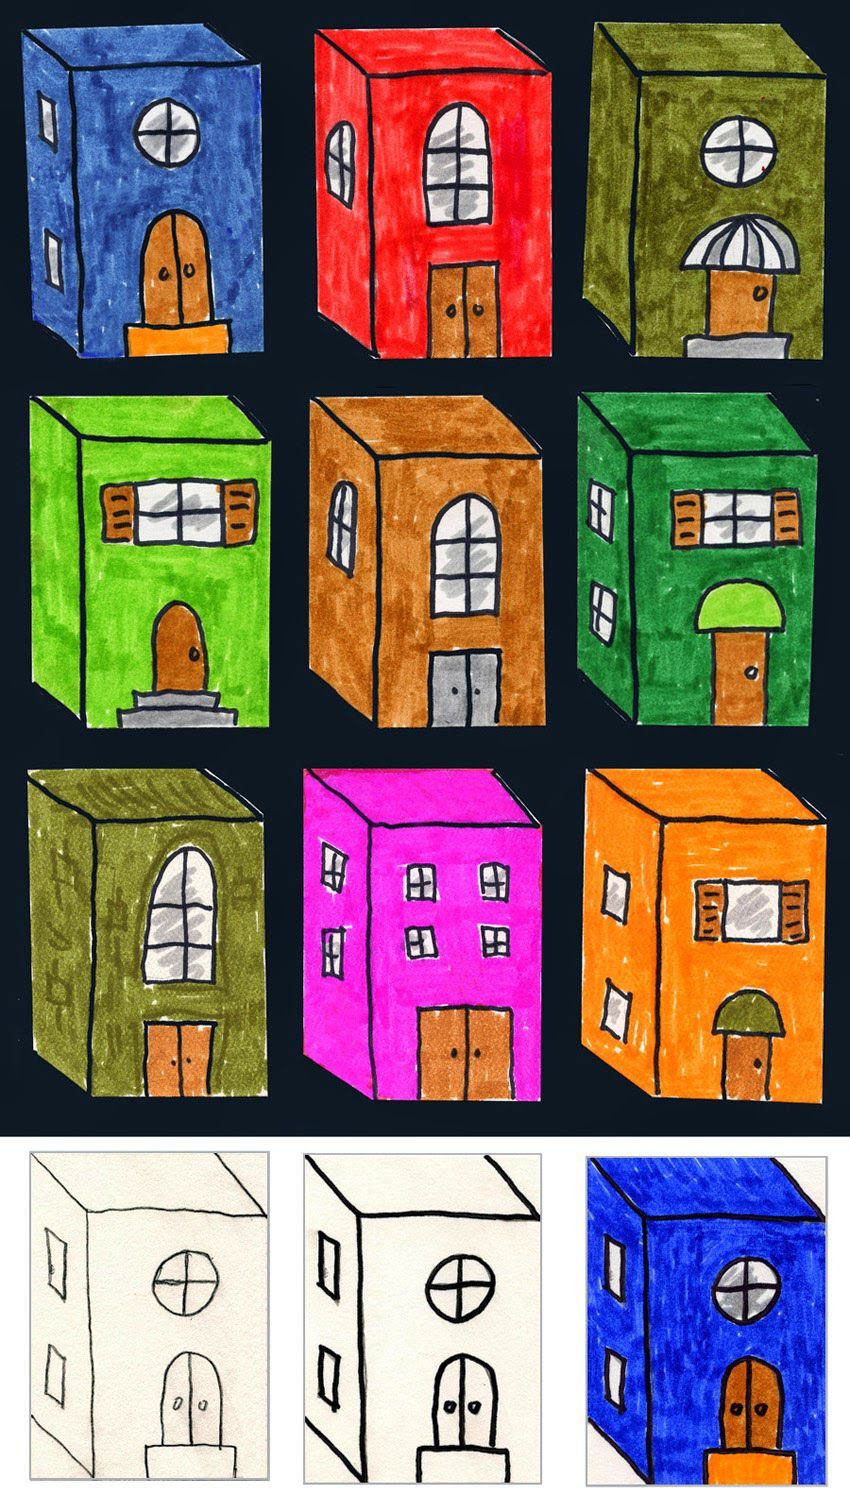 Best ideas about 3D Art Projects For Kids . Save or Pin Art Projects for Kids 3D City Buildings Now.